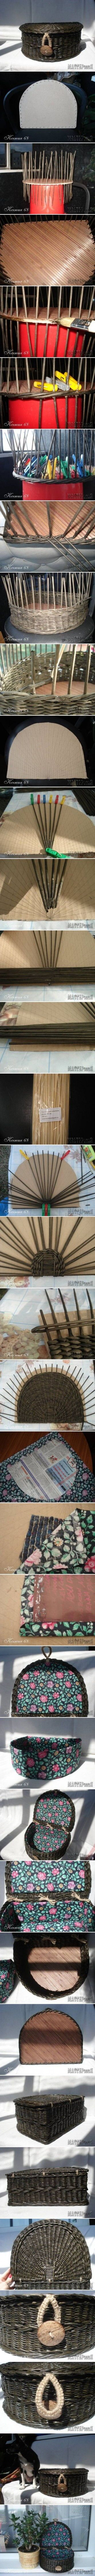 DIY Weave Newspaper Chest DIY Projects